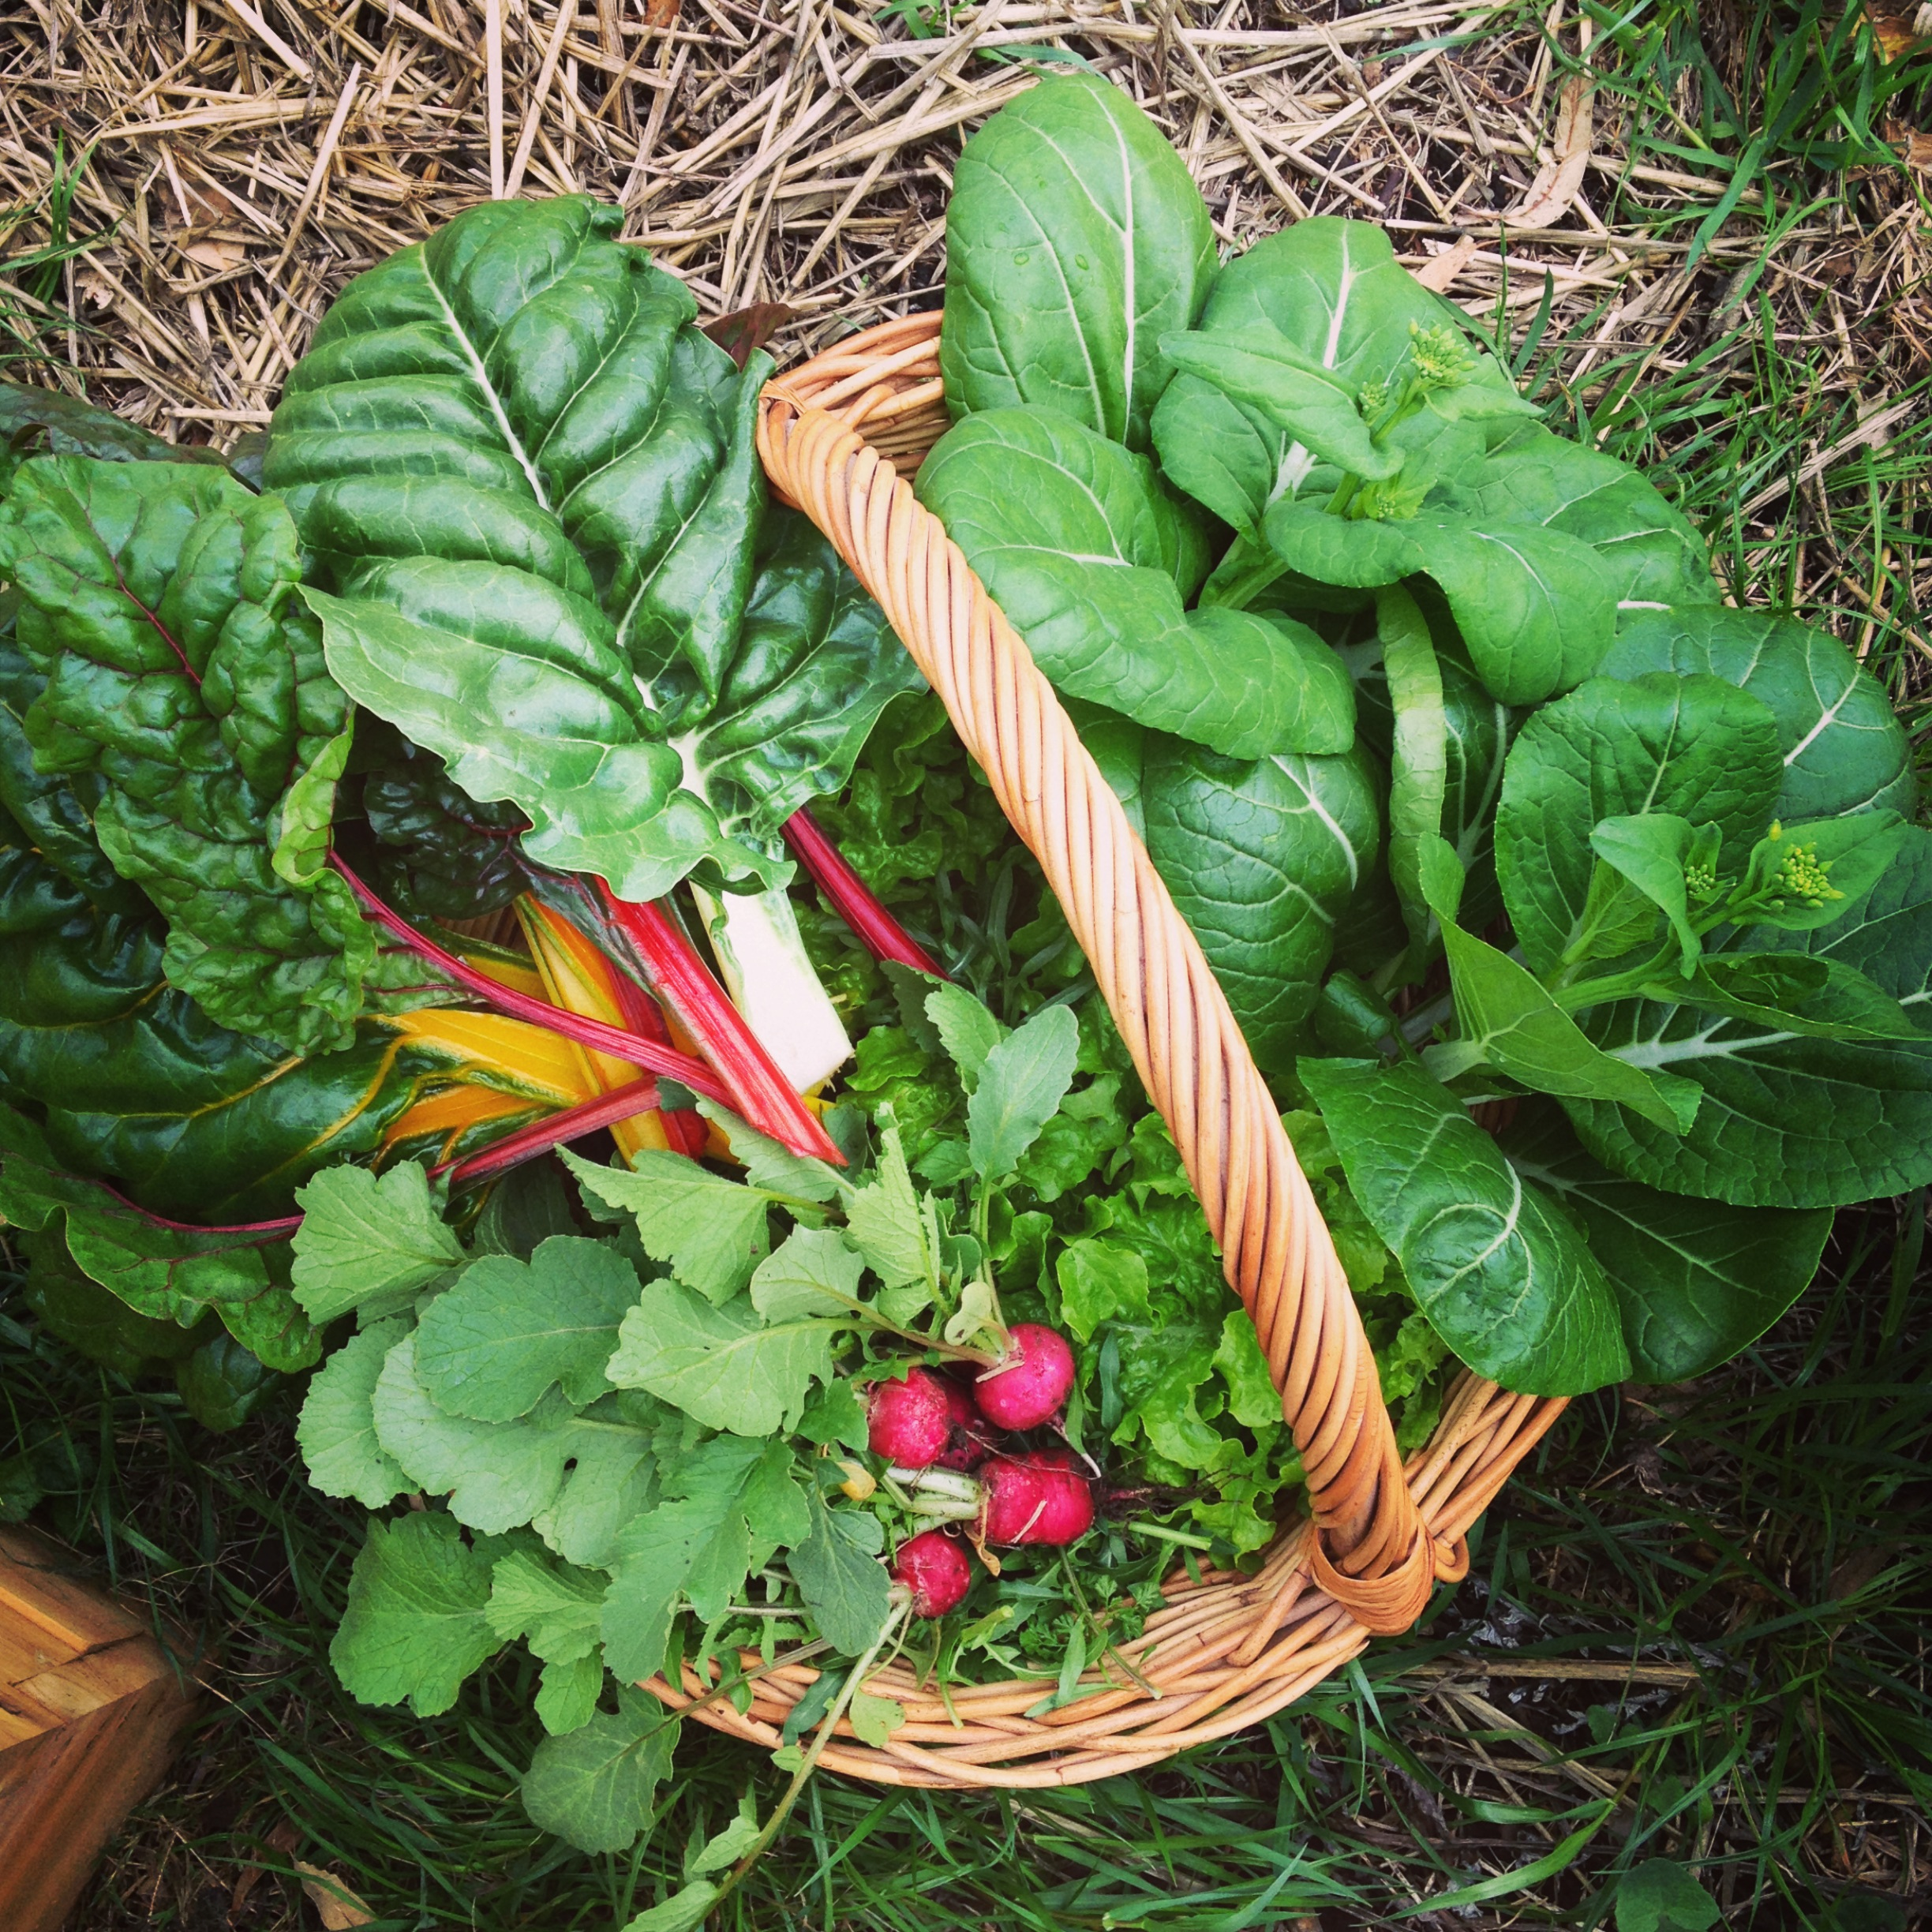 Turning your black thumb green: Four edible plants anyone can grow